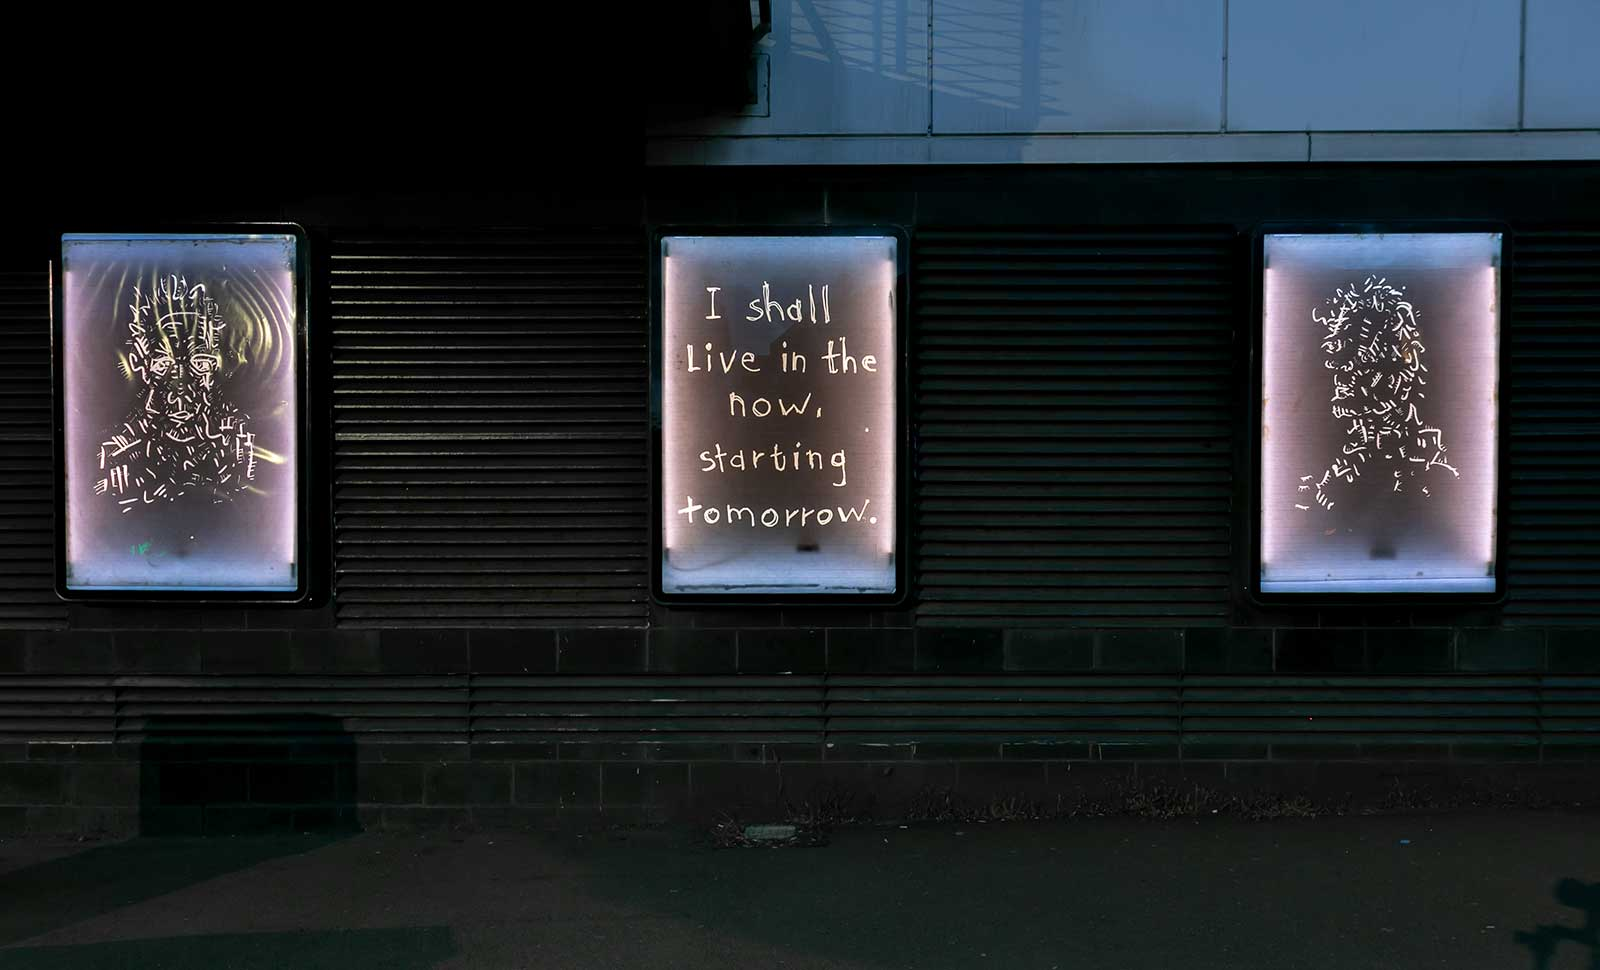 Illuminating West Graham Street with Martin Gray, Sam Wagner and Roderick Abercrombie Smith